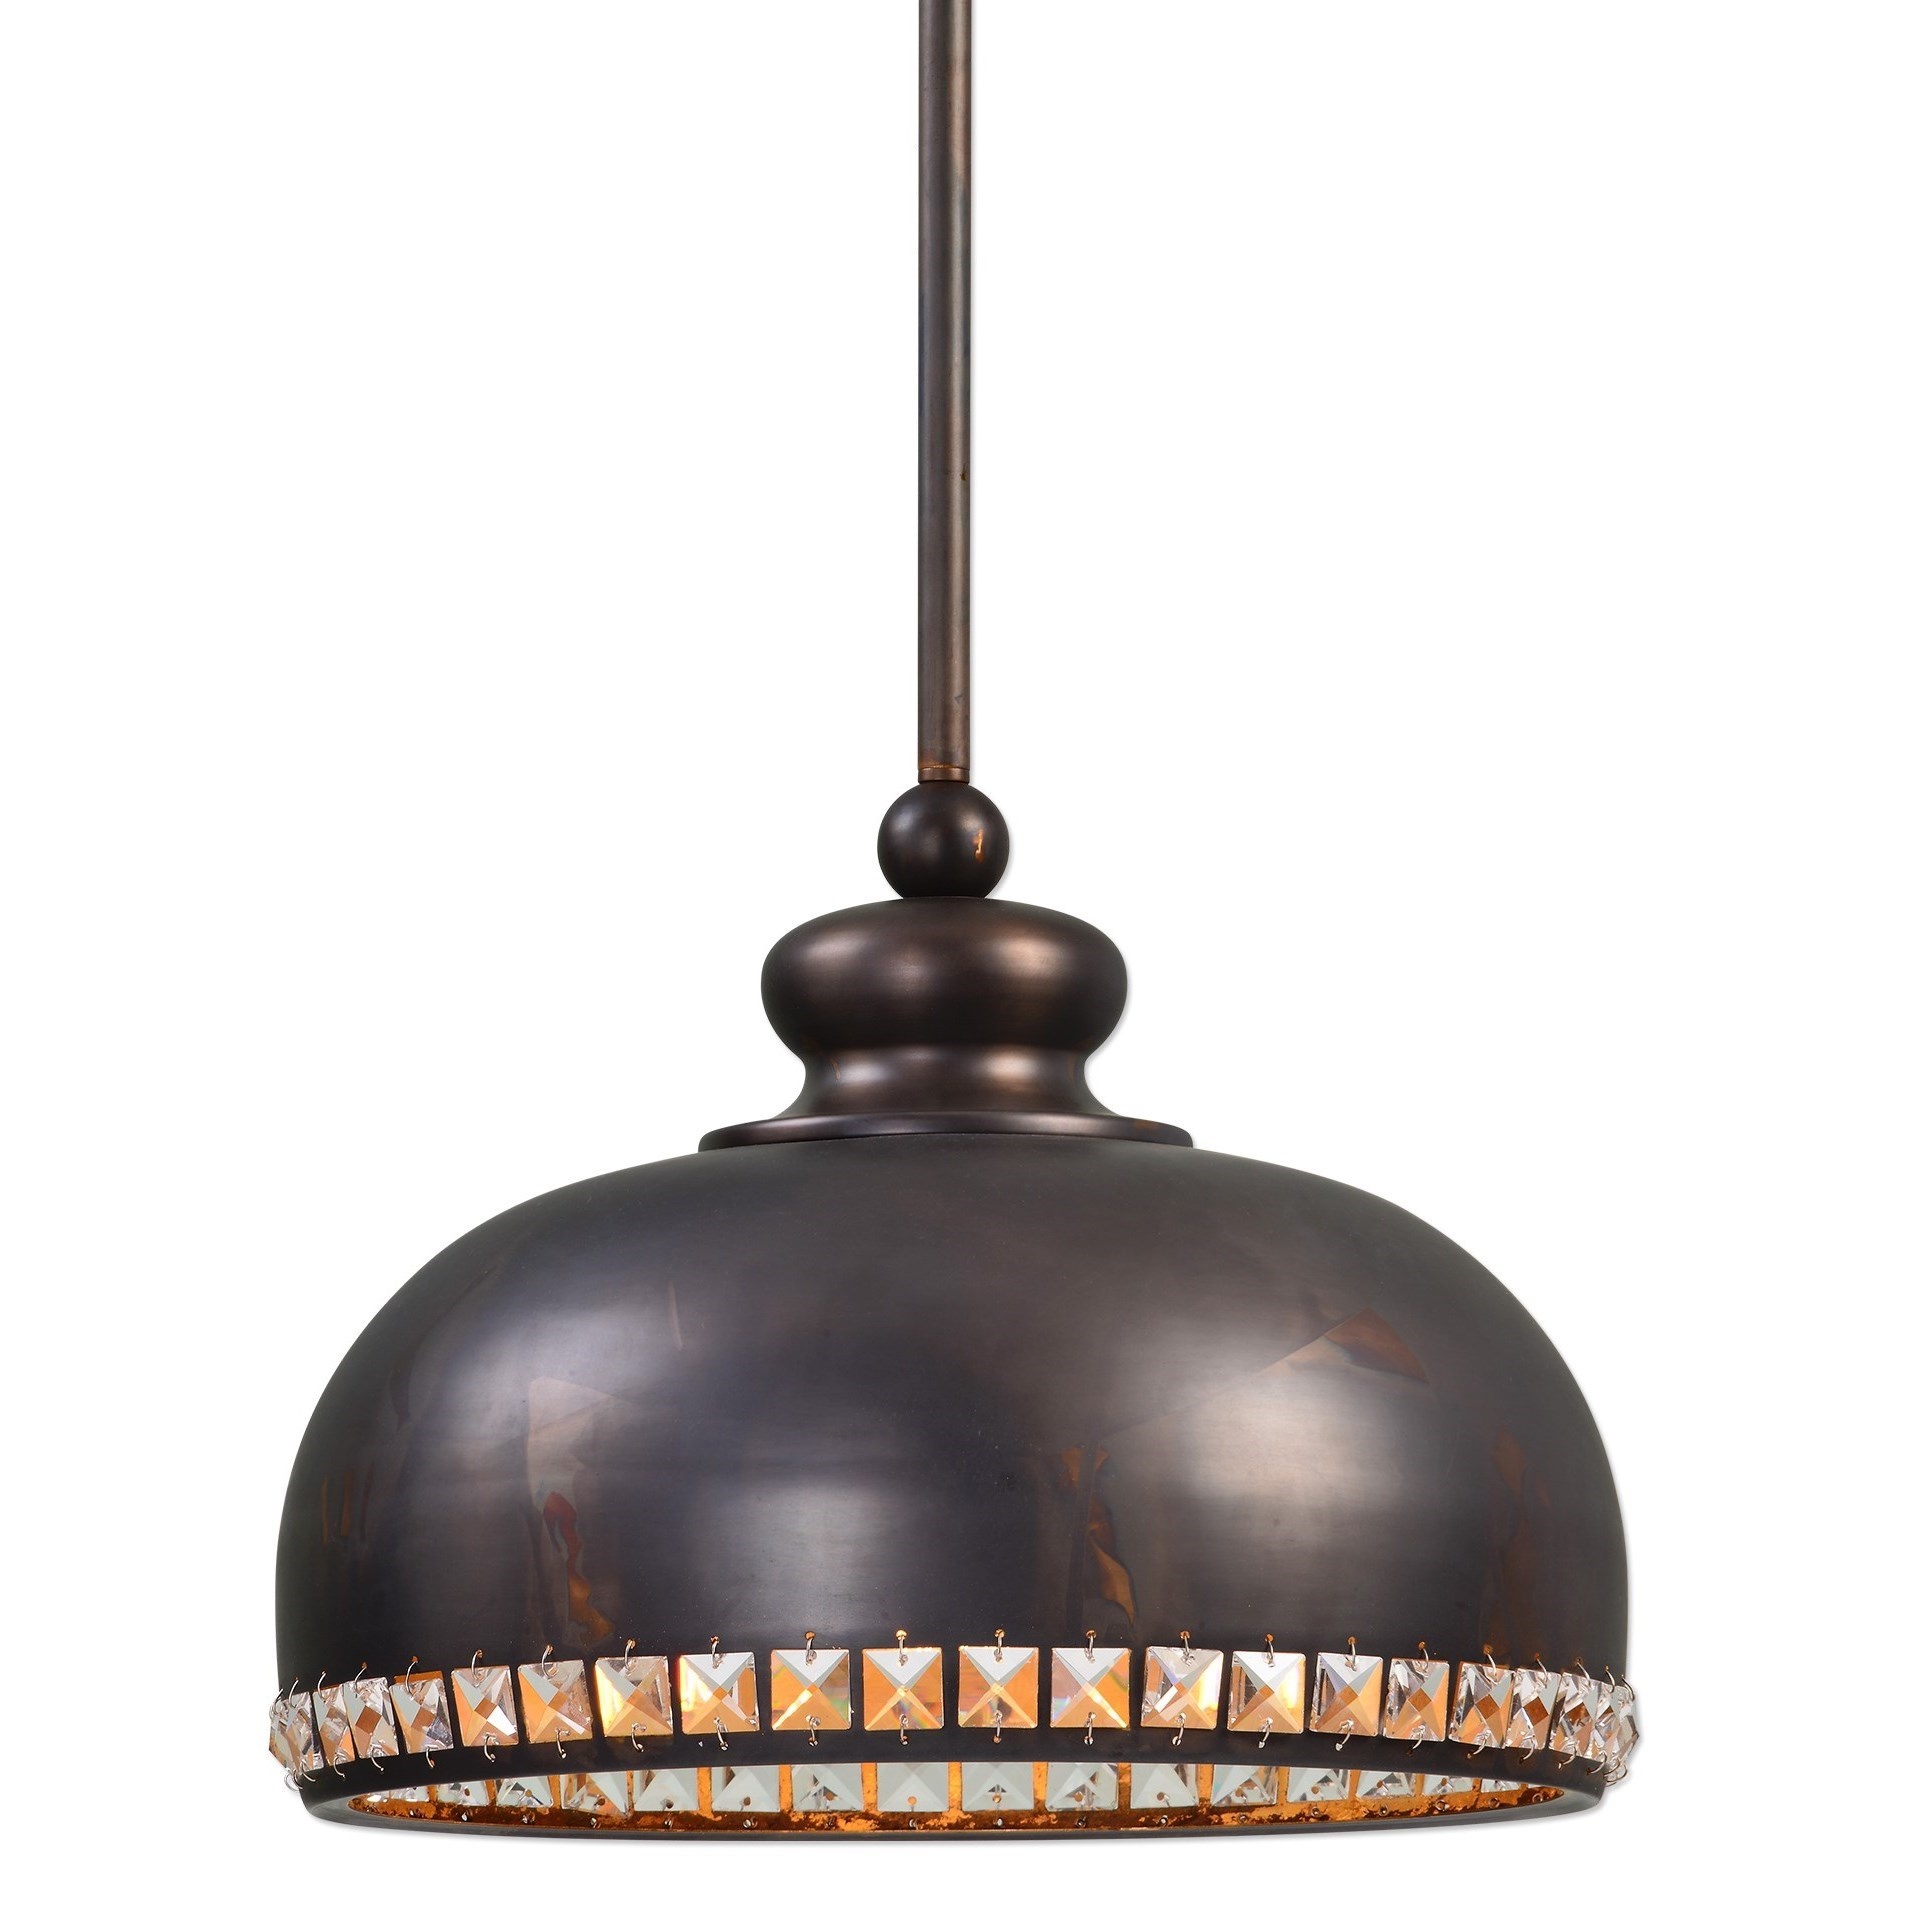 Uttermost Lighting Fixtures Brusett 1 Light Distressed Bronze Pendant - Item Number: 22084